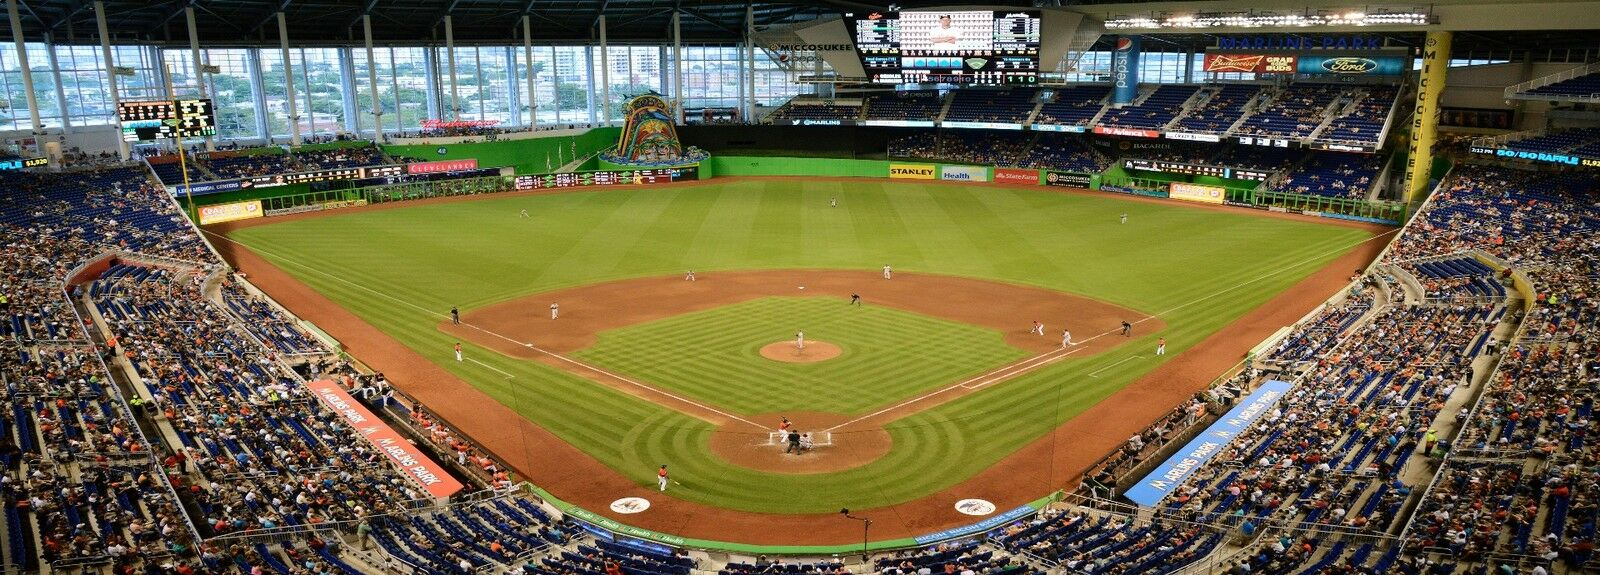 Colorado Rockies at Miami Marlins Tickets (Puerto Rican Heritage Night)